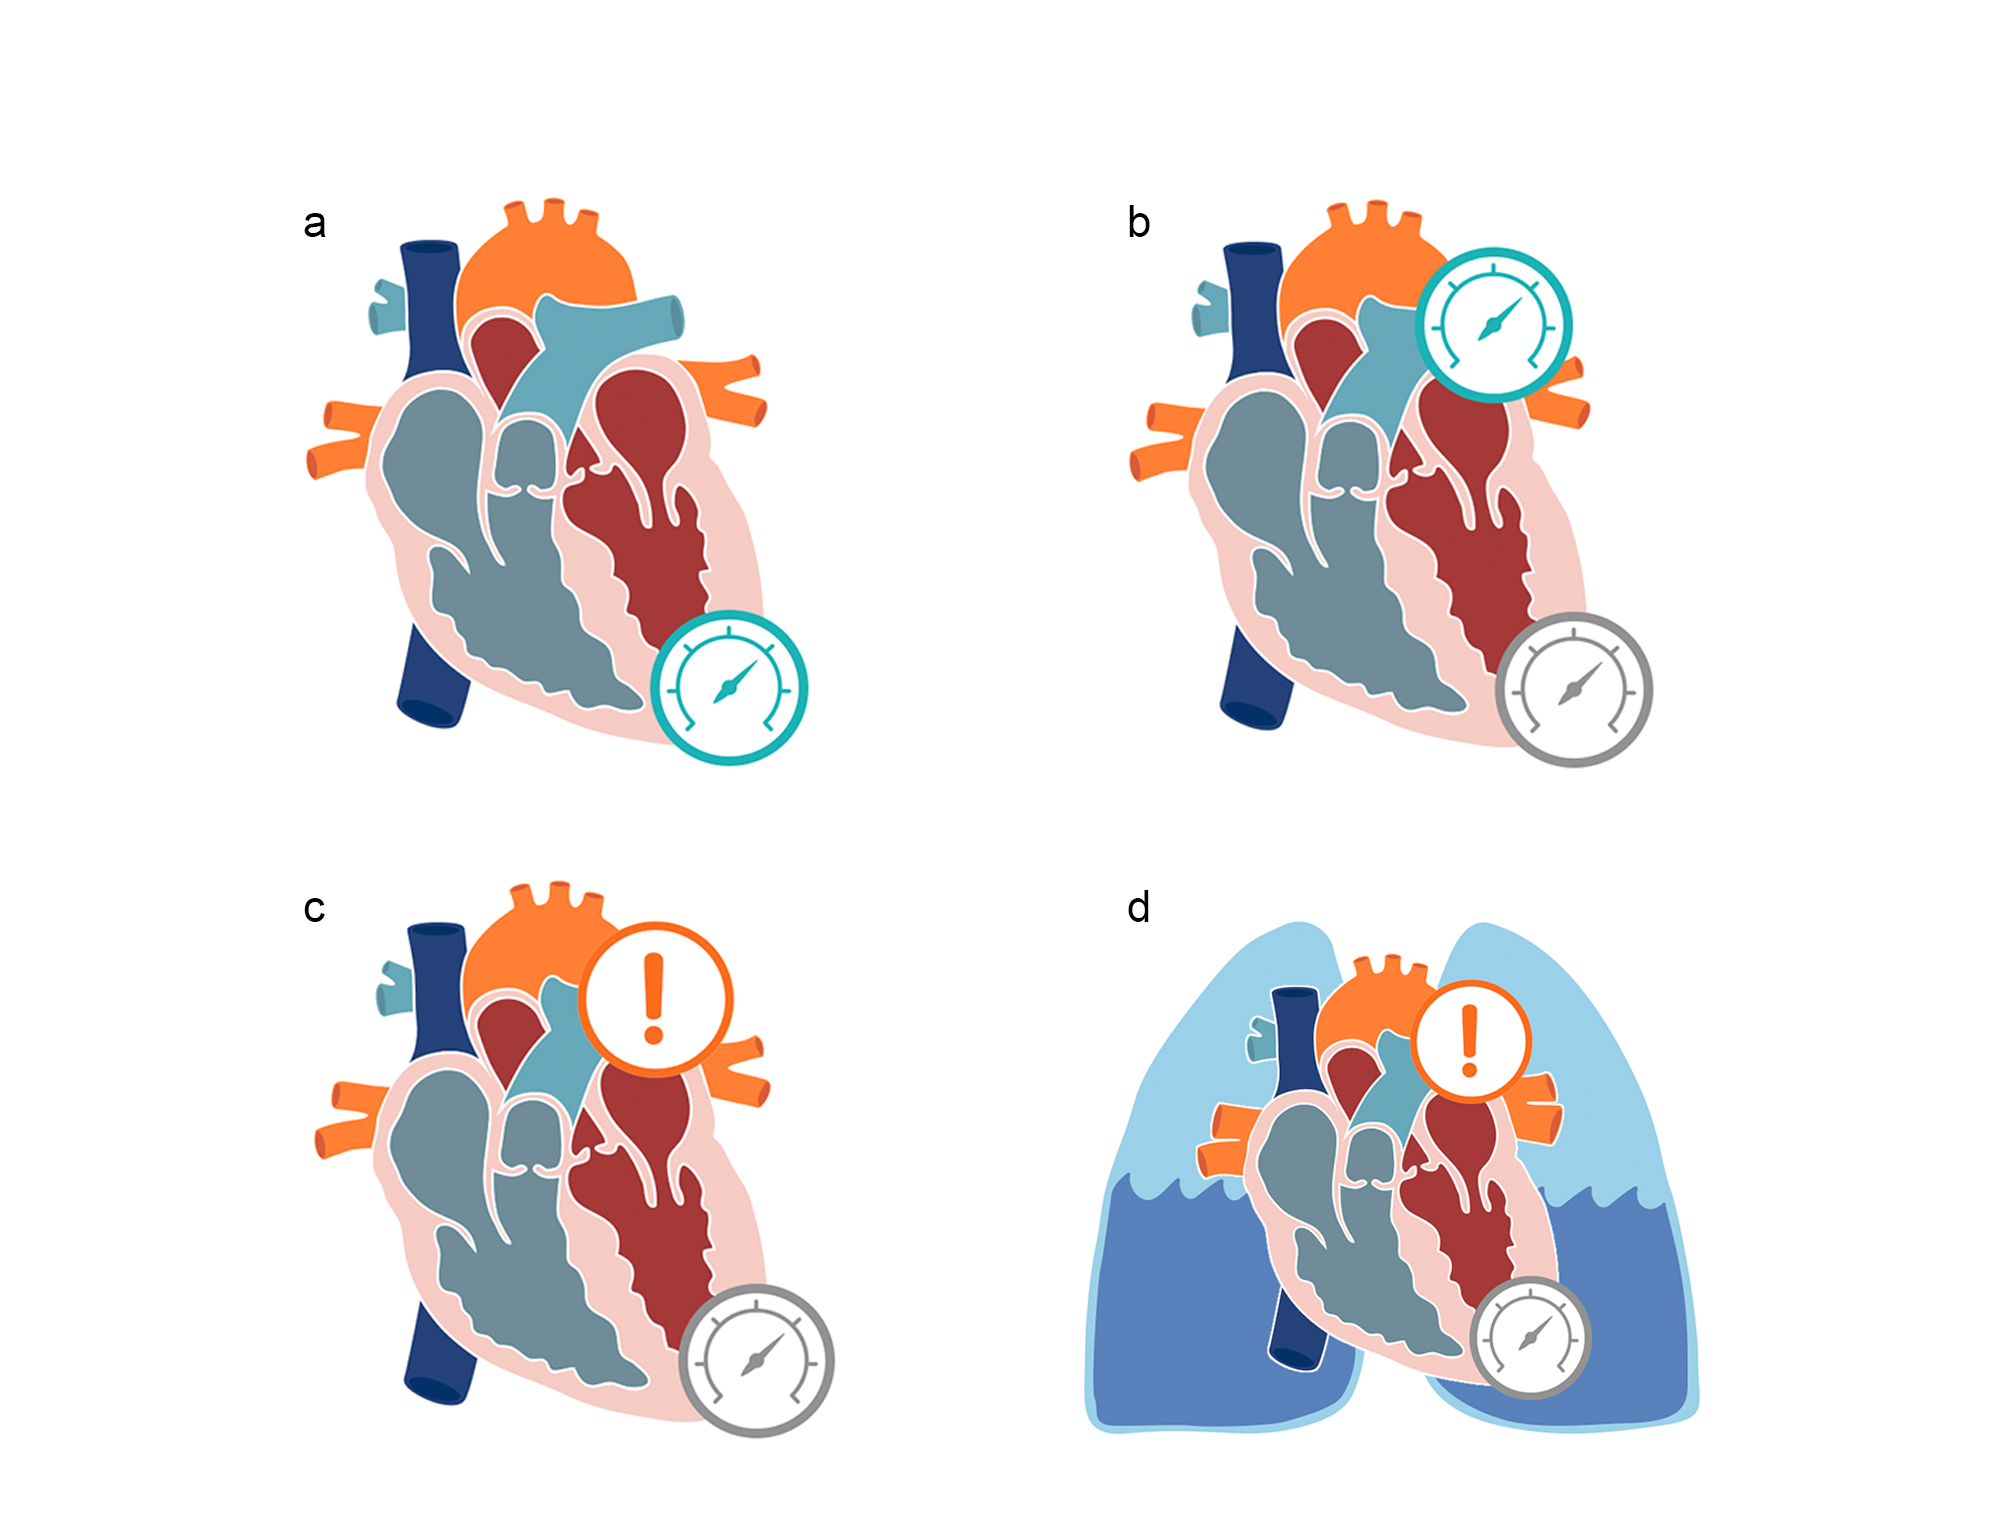 Series of three hearts with main vessels with pressure gauges showing pressure changes in acute cardiogenic pulmonary edema. Illustration.